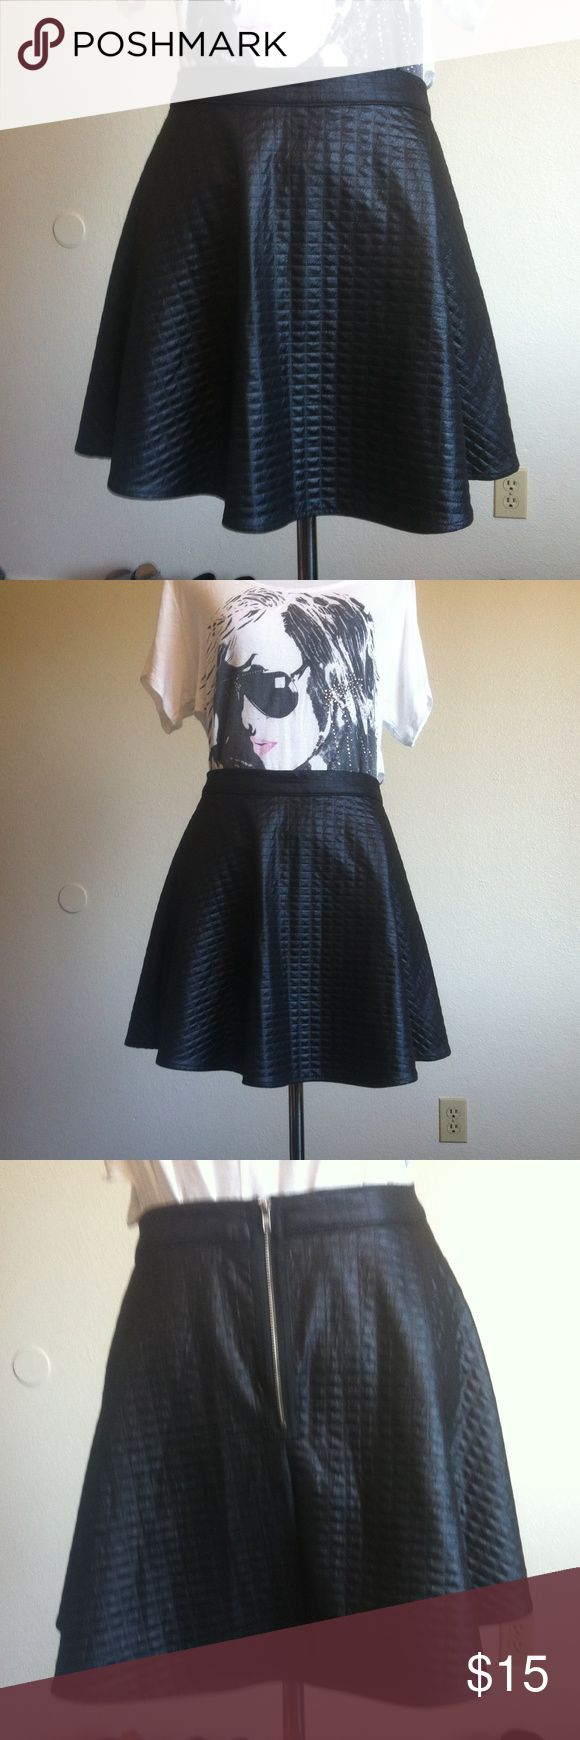 H.I.P. Faux Leather Quilted Skater Skirt Size M black quilted faux leather skater skirt with exposed back zipper by Happening In the Present. Excellent condition, no damage or staining. Happening In the Present Skirts Circle & Skater